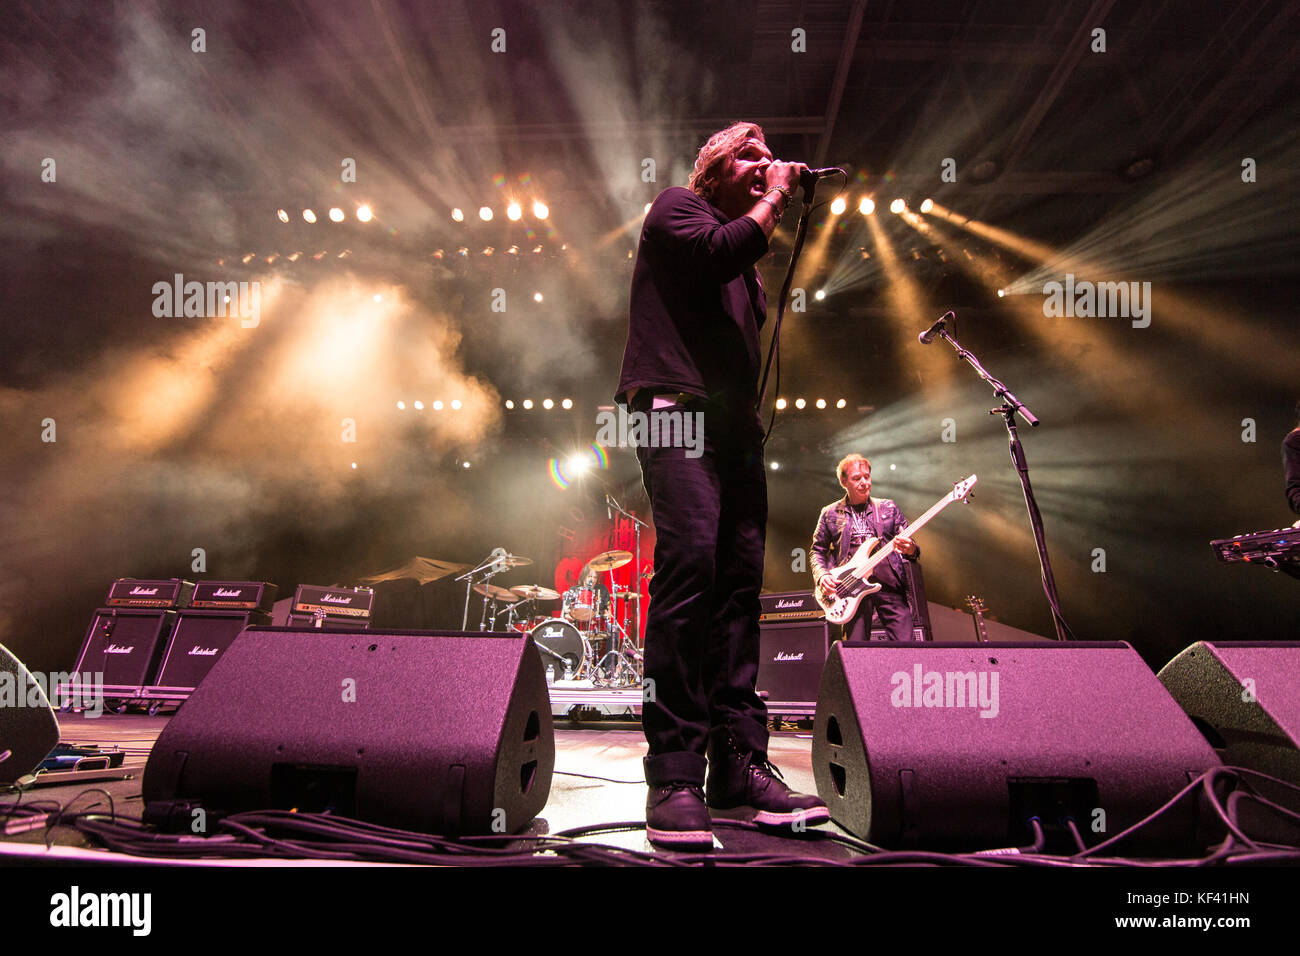 ABBOTSFORD, CANADA. 22nd Oct, 2017. Canadian hard rock band Honeymoon Suite performing at the Abbotsford Centre - Stock Image